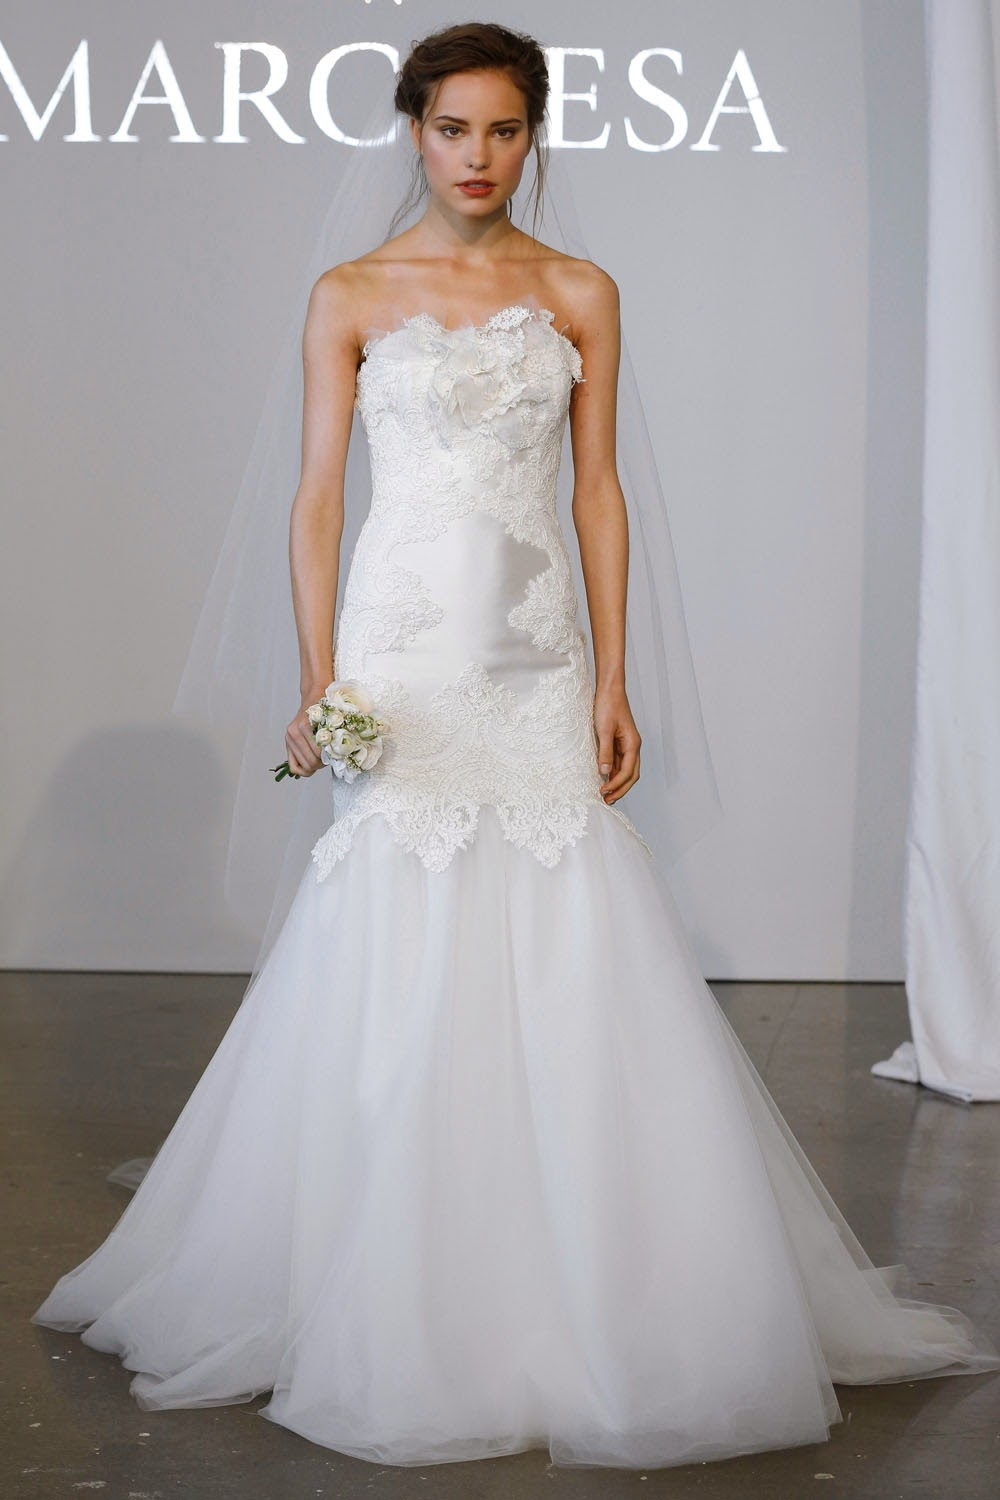 Marchesa Spring 2015 Wedding Dresses - Runway - World of ...